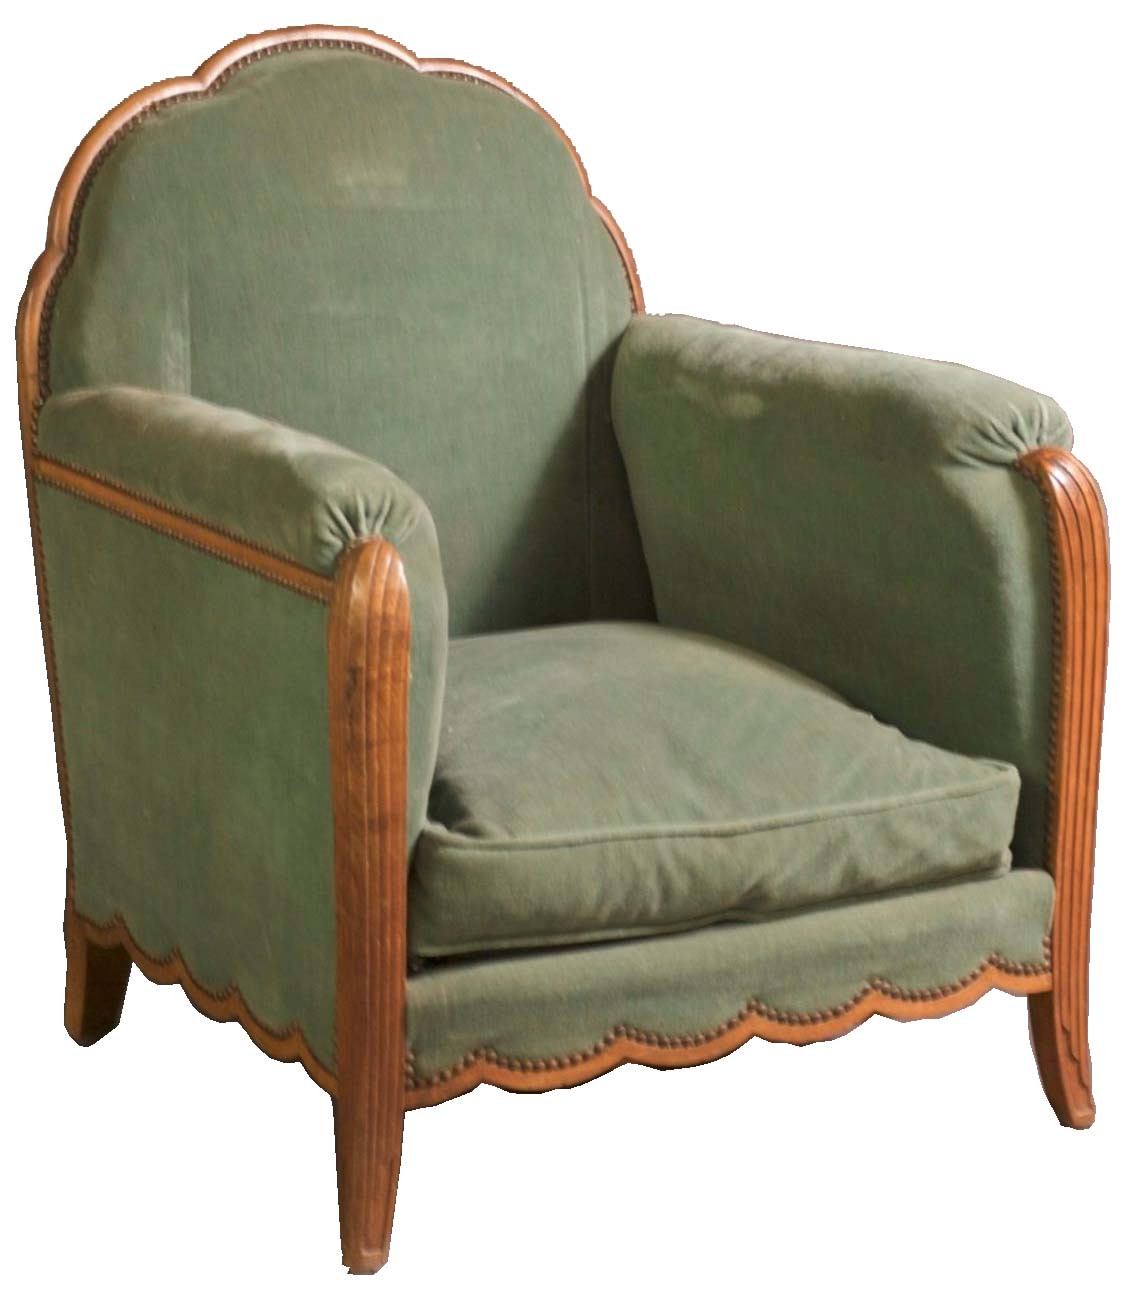 Andre Frechet Pair Of 1920s Club Chairs  Modernism